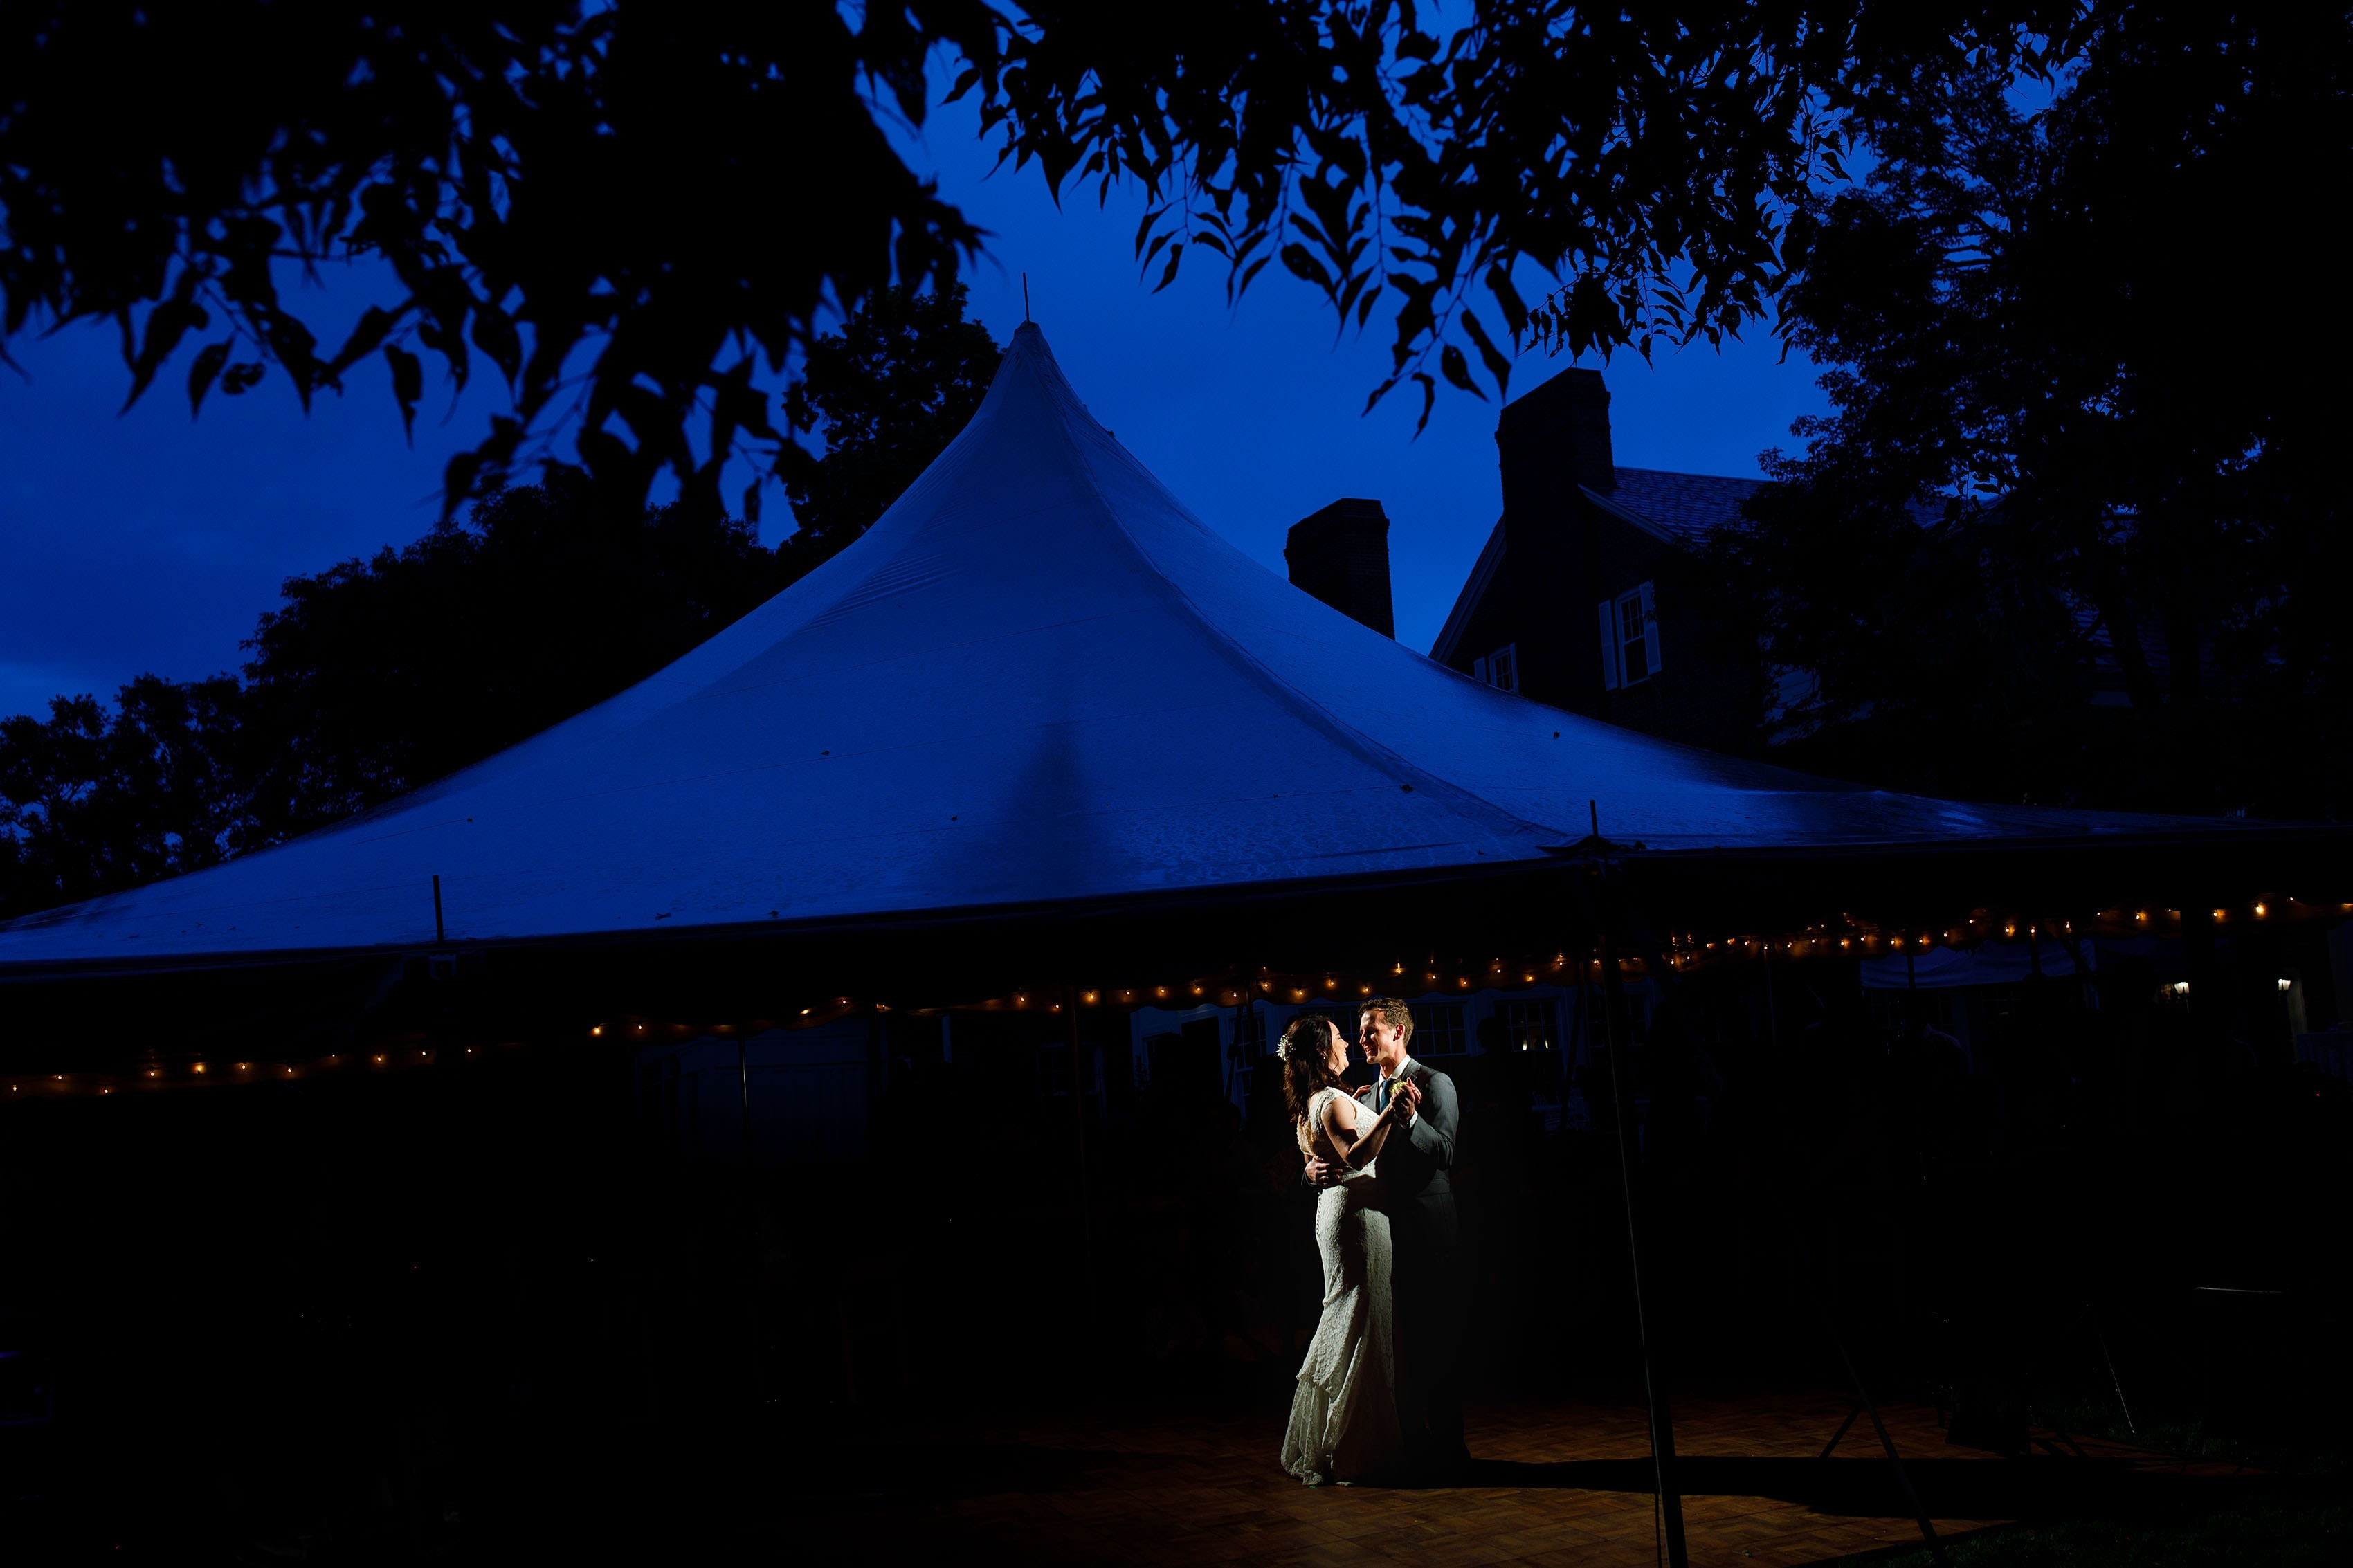 Meaghan and Matthew enjoy their first dance under the tent during their Buell Mansion wedding reception